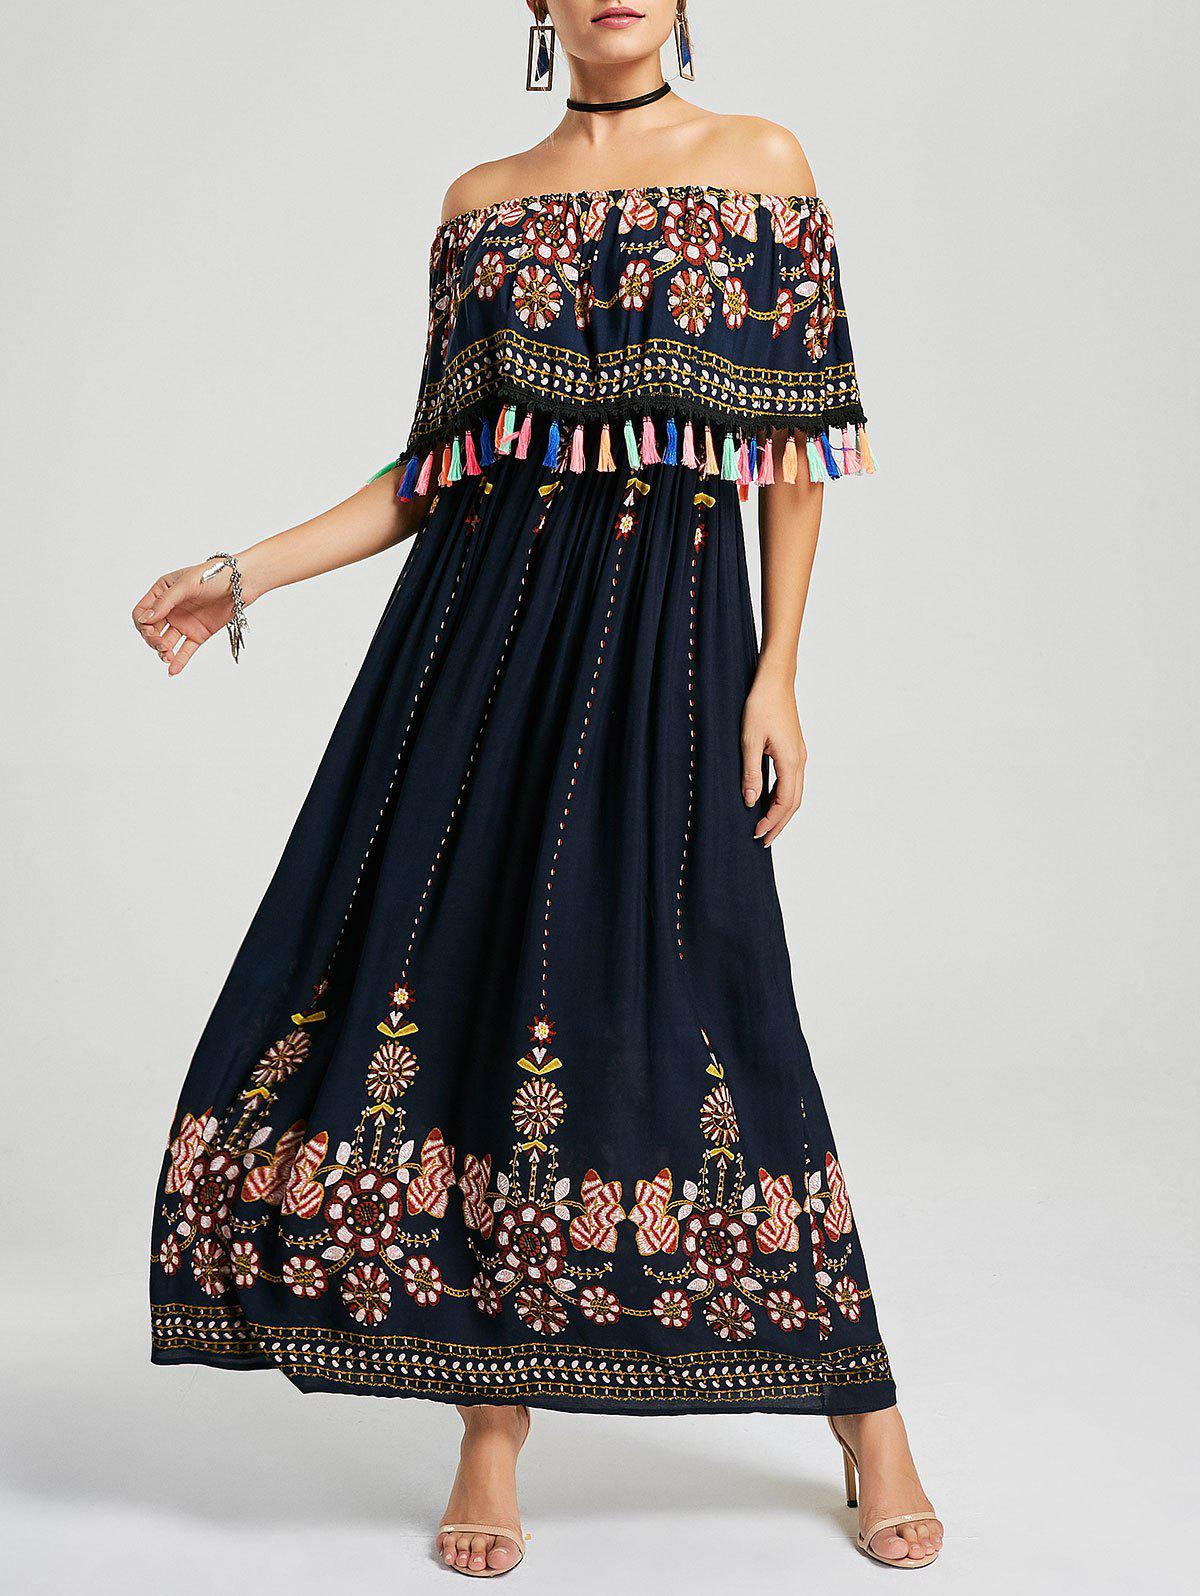 Tassel Off The Shoulder Boho Maxi Dress - PURPLISH BLUE M